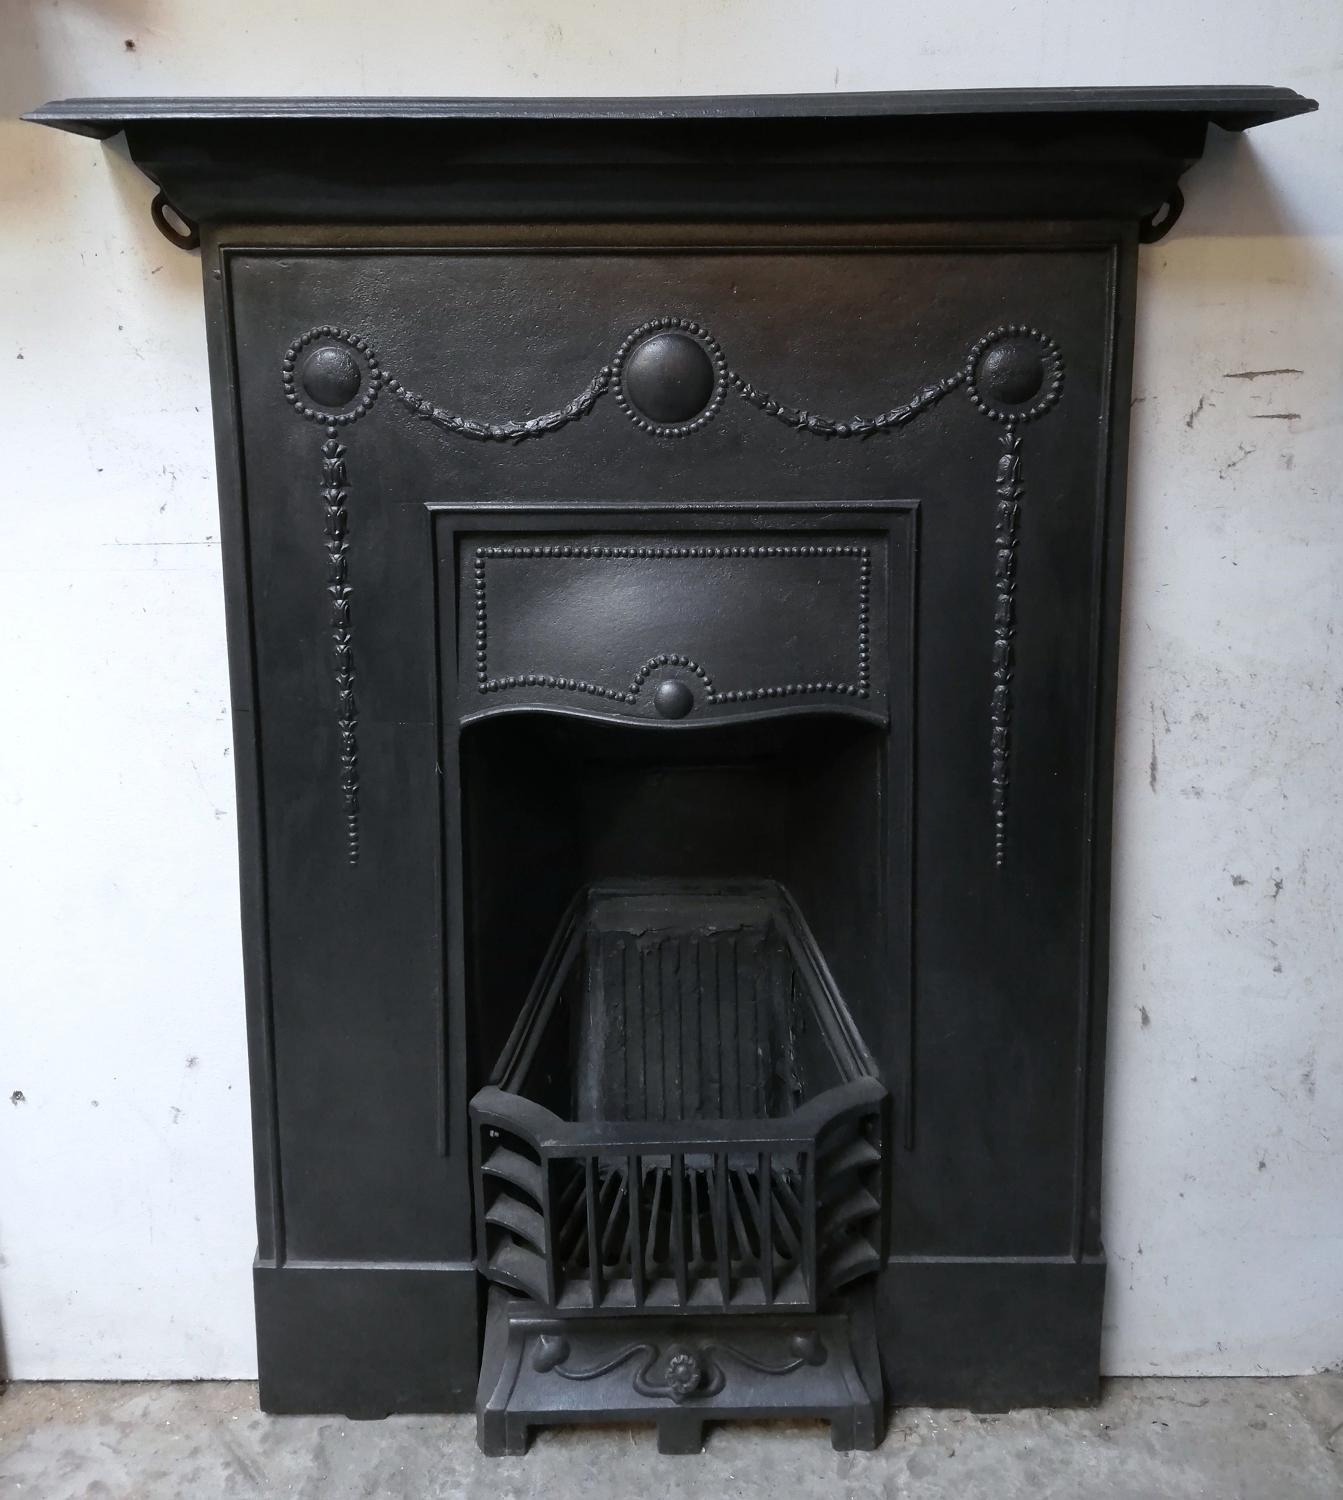 fc0020 an attractive 1920\u0027s cast iron combination bedroomfc0020 an attractive 1920\u0027s cast iron combination bedroom fireplace